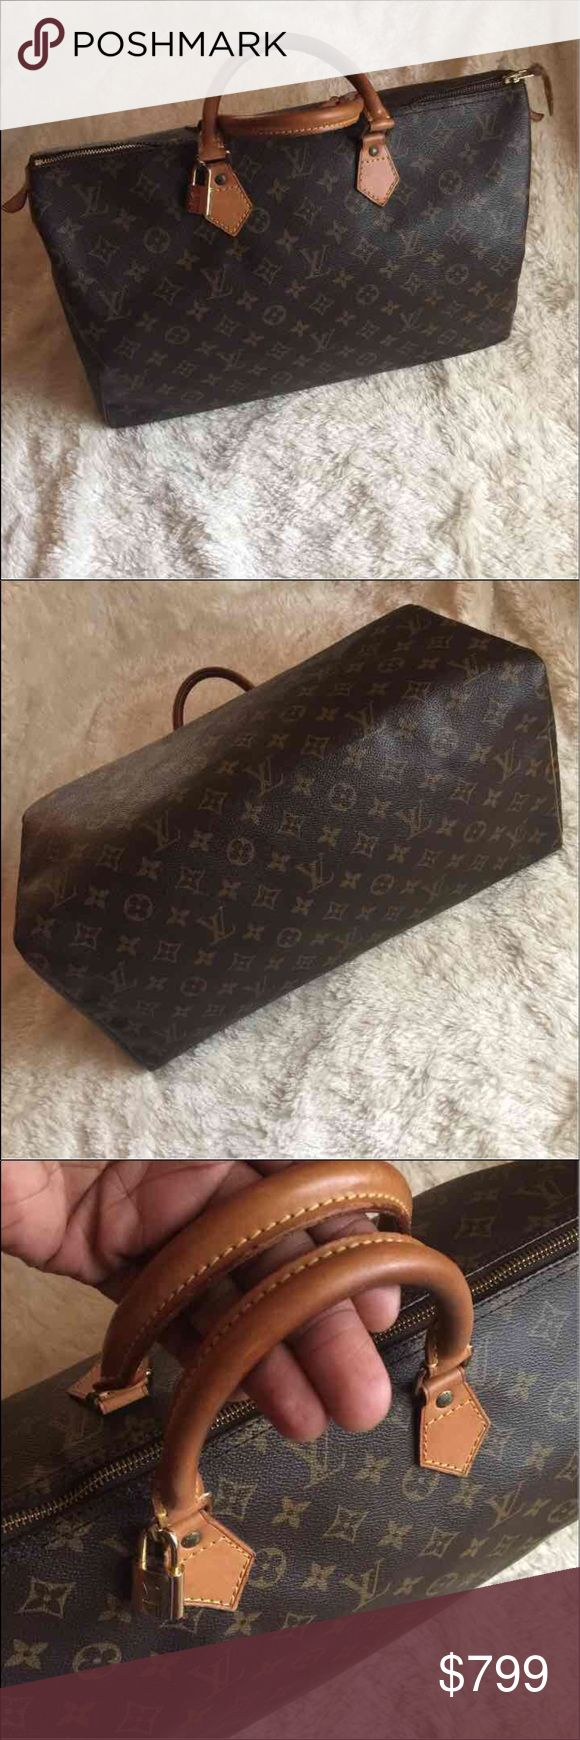 Louis Vuitton Speedy 40 Beautiful and pre-owned! 100% Authentic Louis Vuitton Monogram Speedy 40  Louis Vuitton Speedy 40 with brass hardware, tan vachetta leather trim, dual rolled handles, brown canvas lining, single pocket at interior wall and zip closure at top.   Good pre-owned condition with light signs of use. Patina on handles has darkened some adding to the beauty of the bag! Outside: Good. Very light Moderate scuffs on corner! Piping no holes or tears! Inside no visible stains, no…